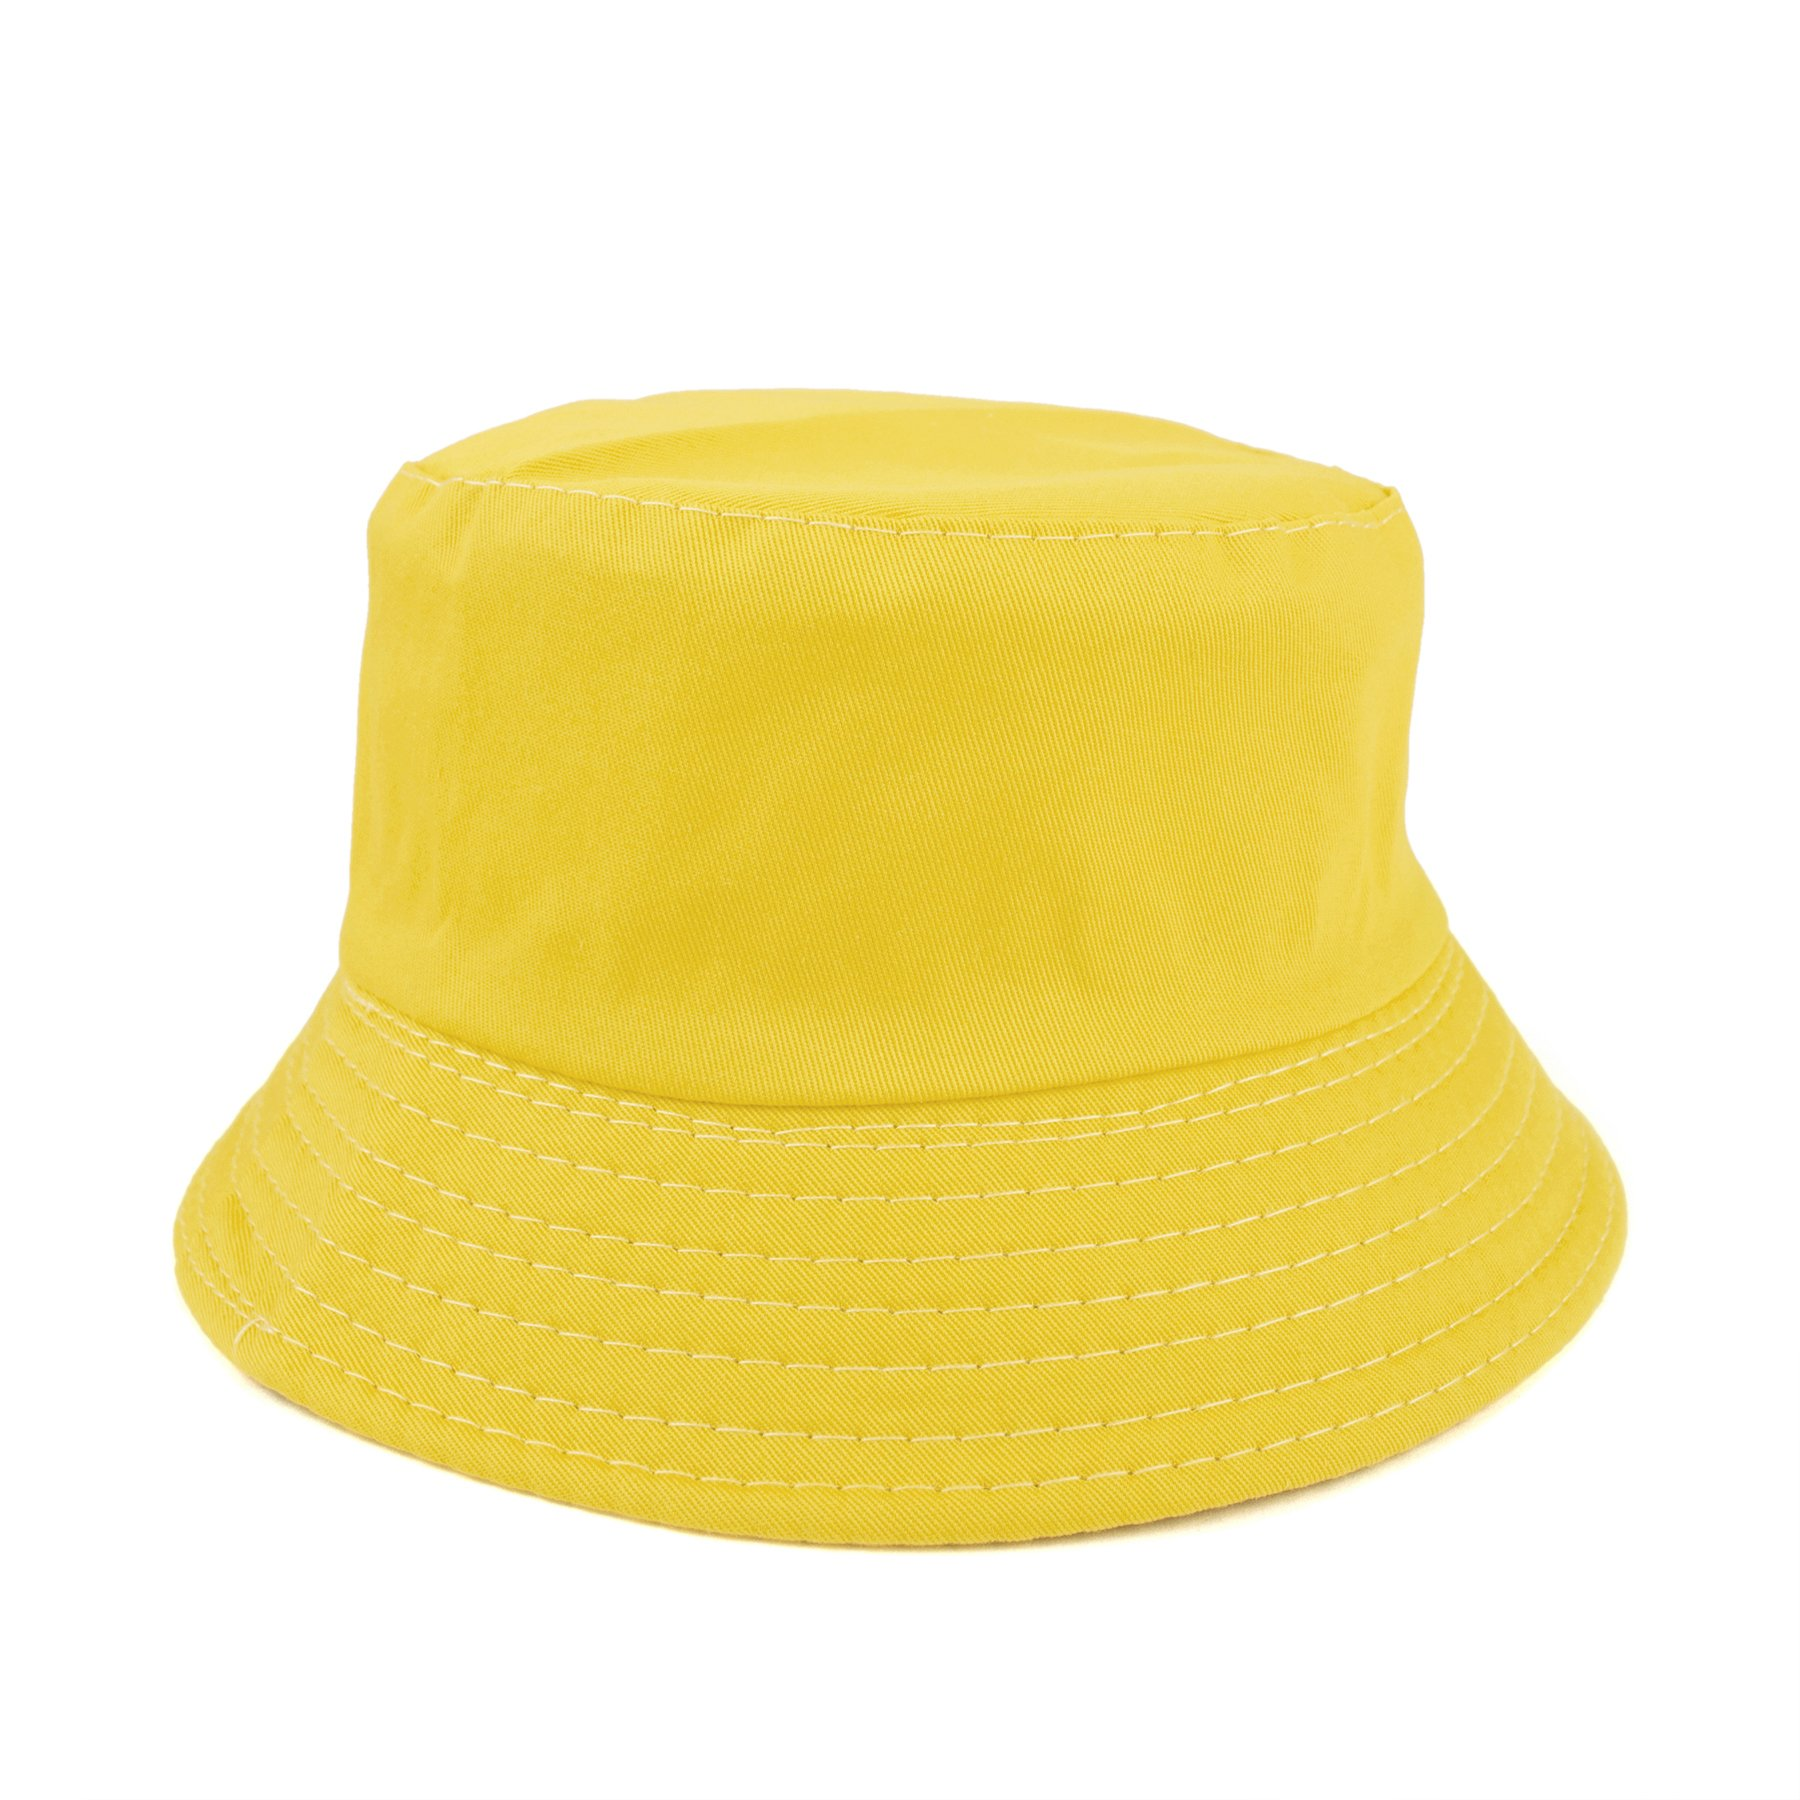 Opromo Kids Cotton Twill Bucket Hat, Summer Outdoor Sun Hat, Sun Protective Hat-Yellow-48 Pcs